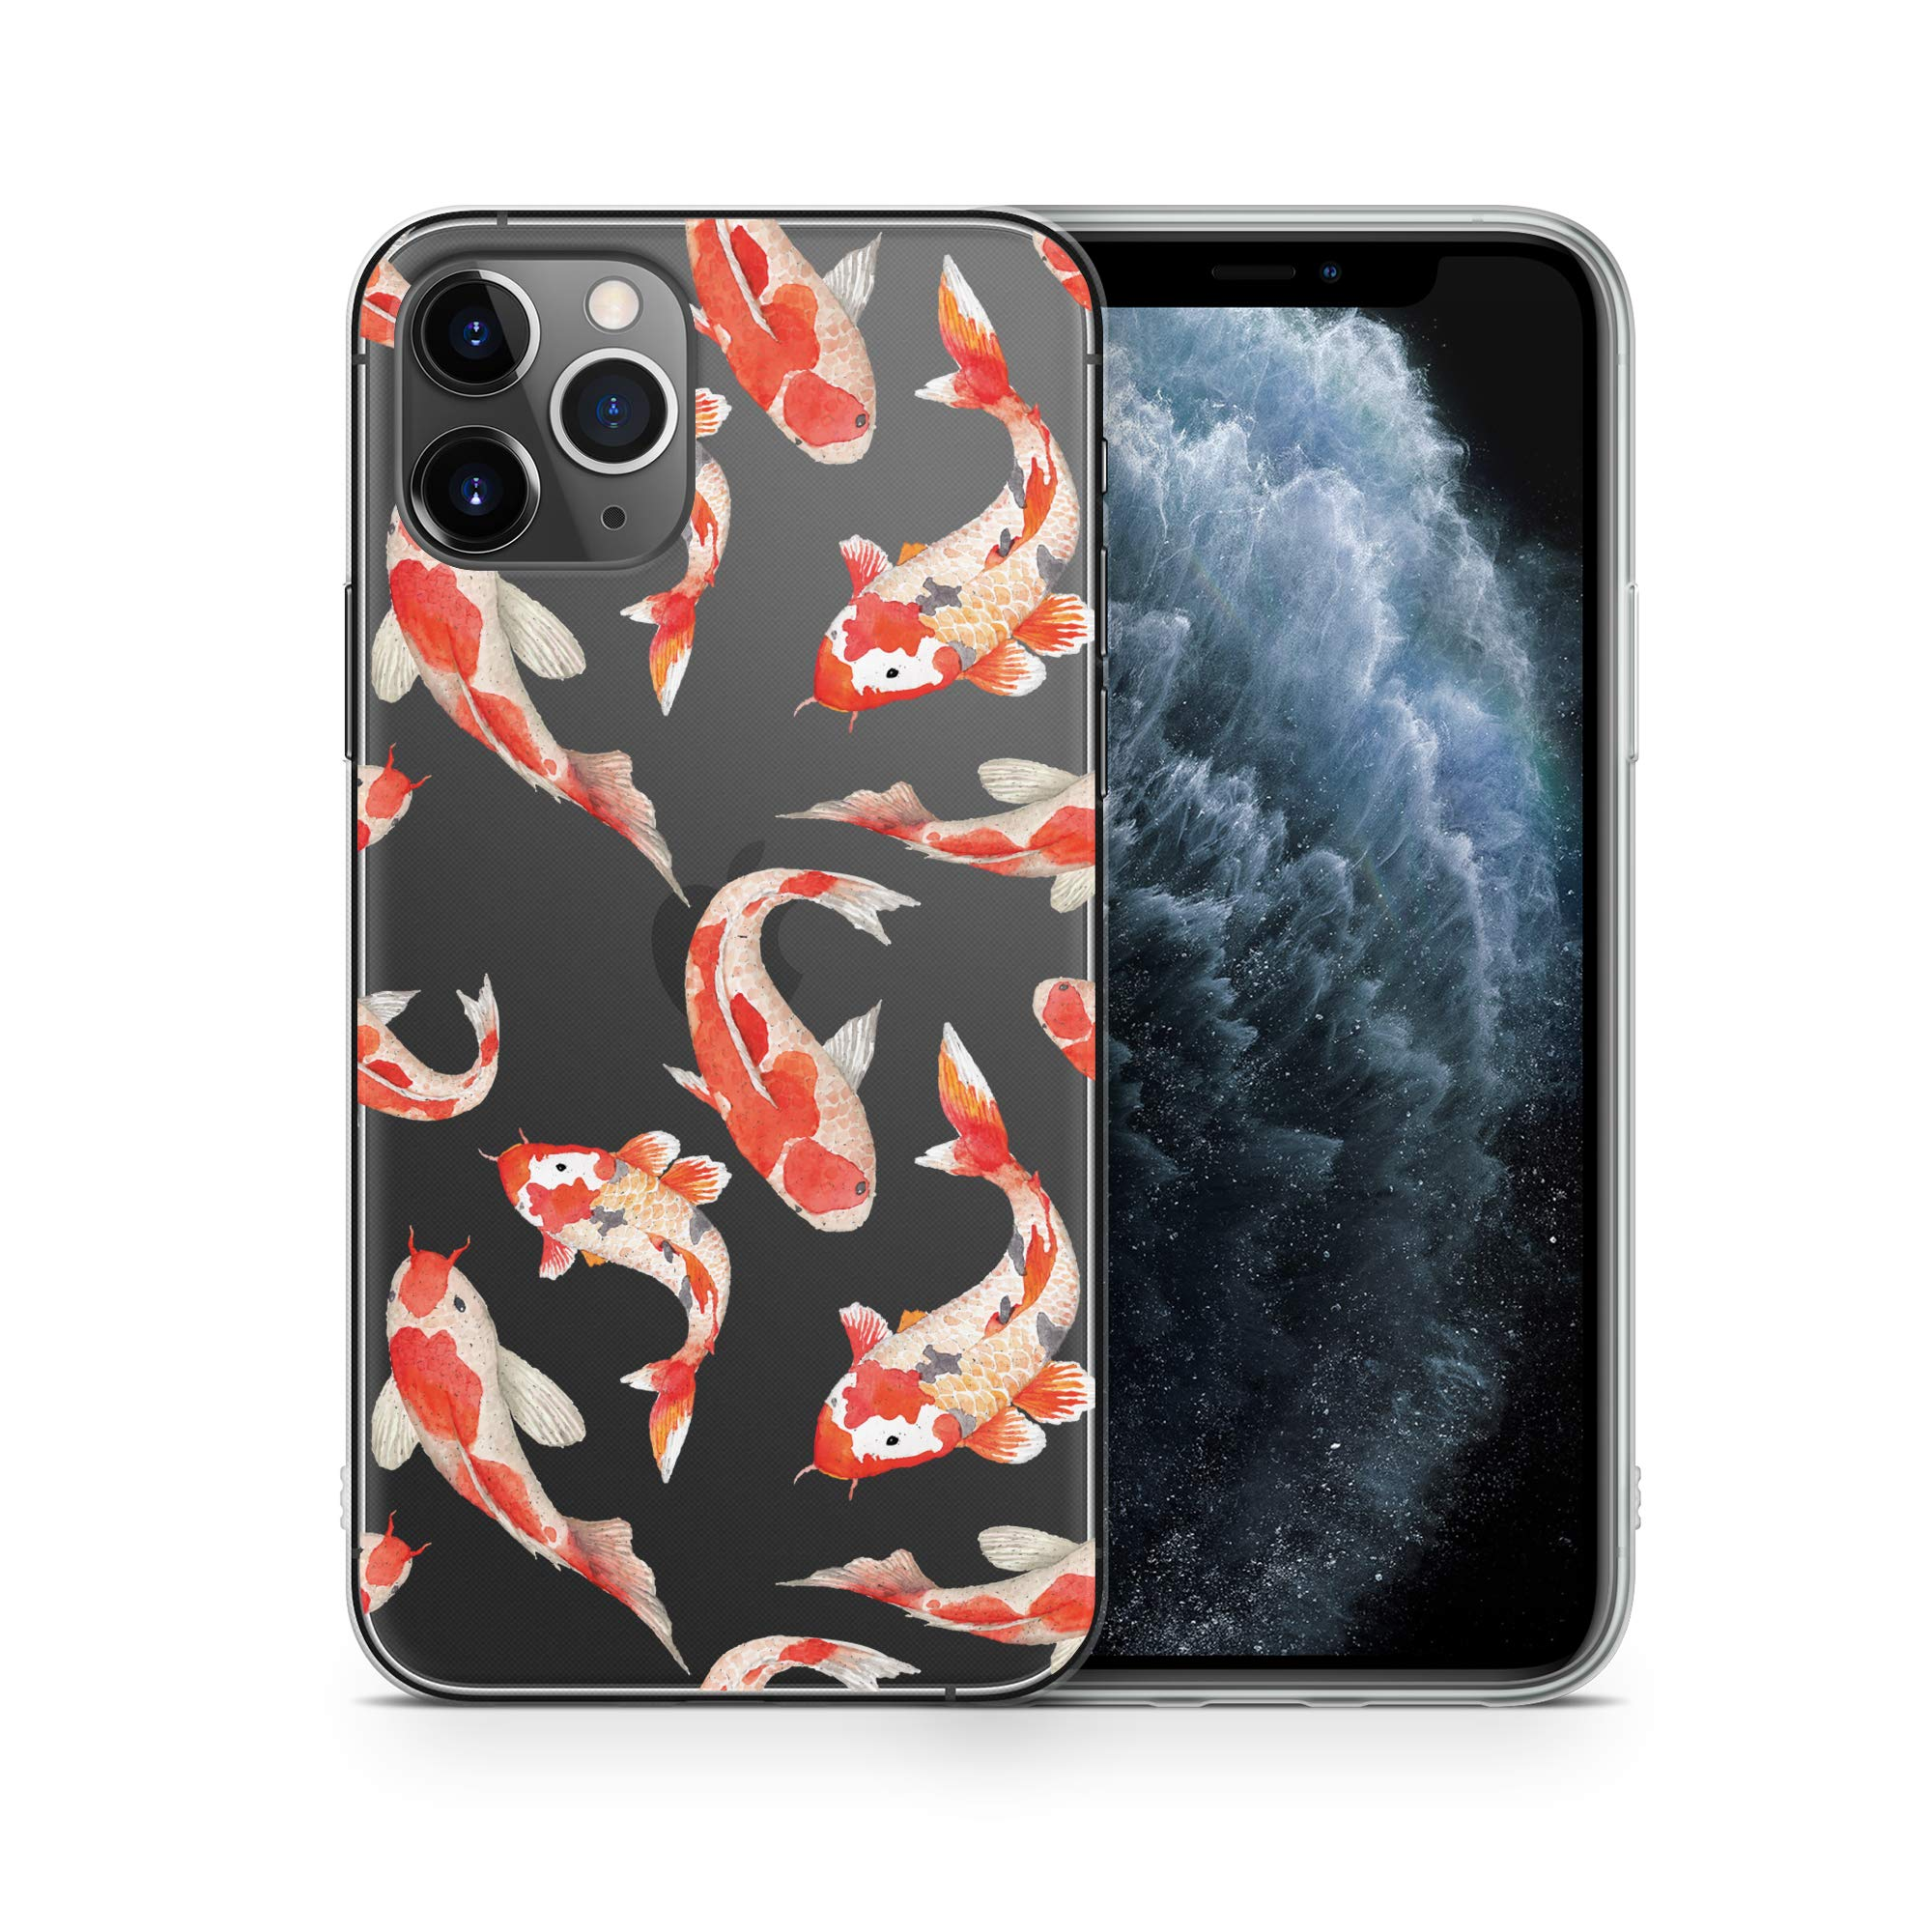 iPhone 11 Pro Max Case by Case Yard Fit for iPhone 11 Pro Max 6.5-Inch [ 2019 Release ] Shock-Absorption iPhone 11 Pro Max Case Clear iPhone 11 Pro Max Clear iPhone 11 Pro Max Case Koi Fish